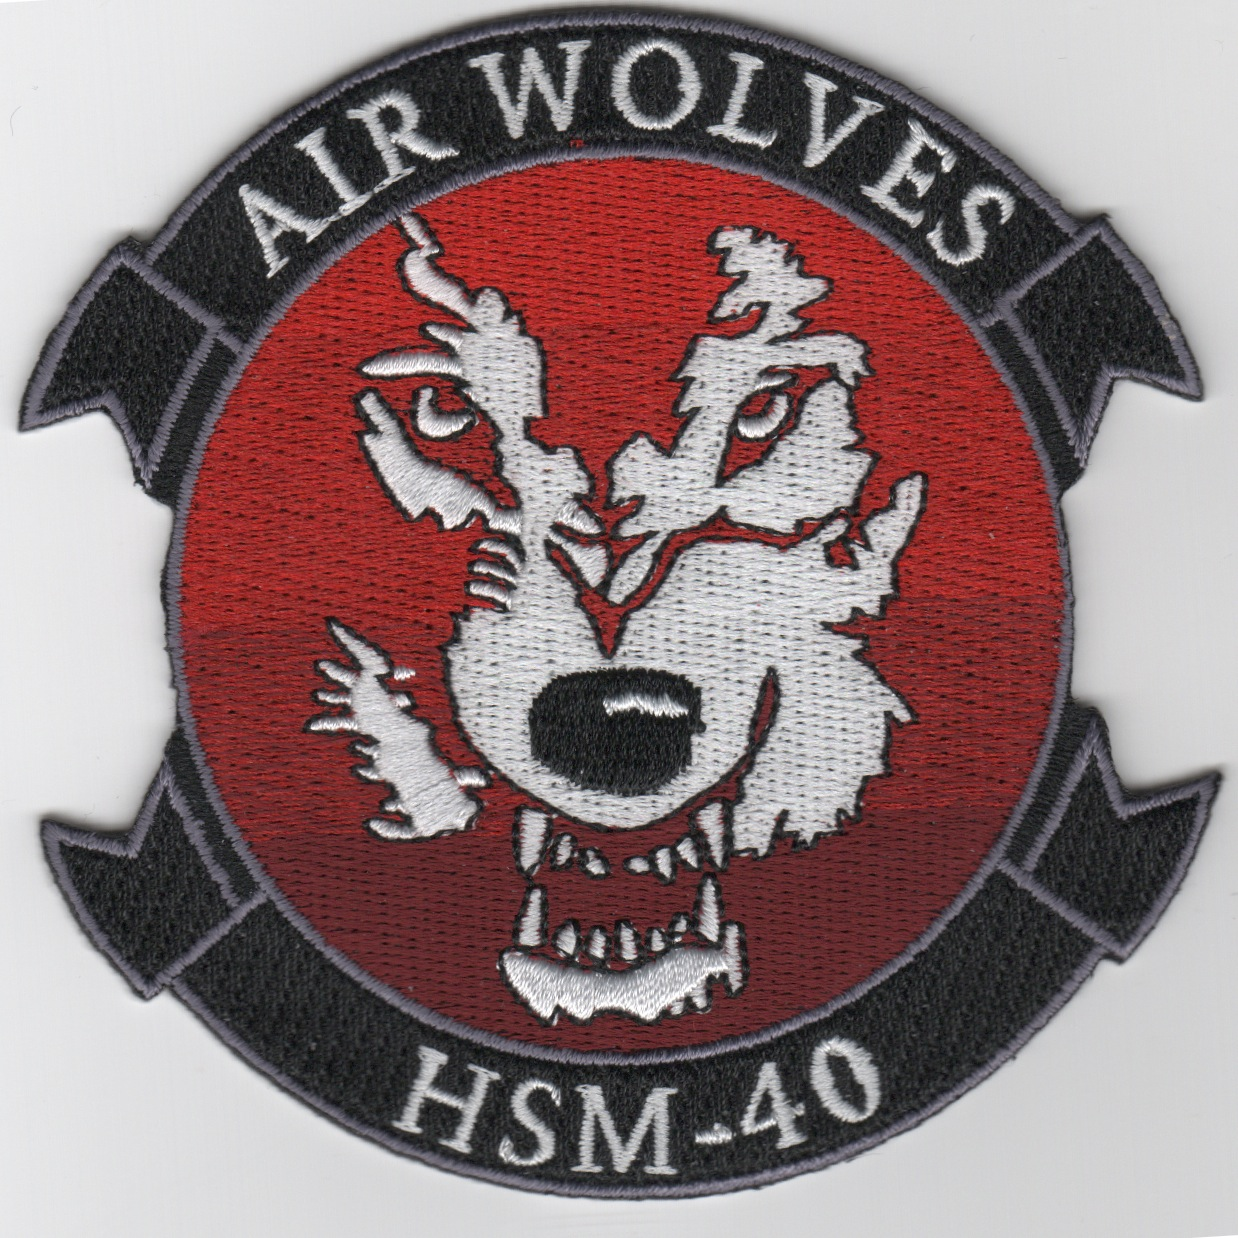 HSM-40 Squadron Patch (Red)